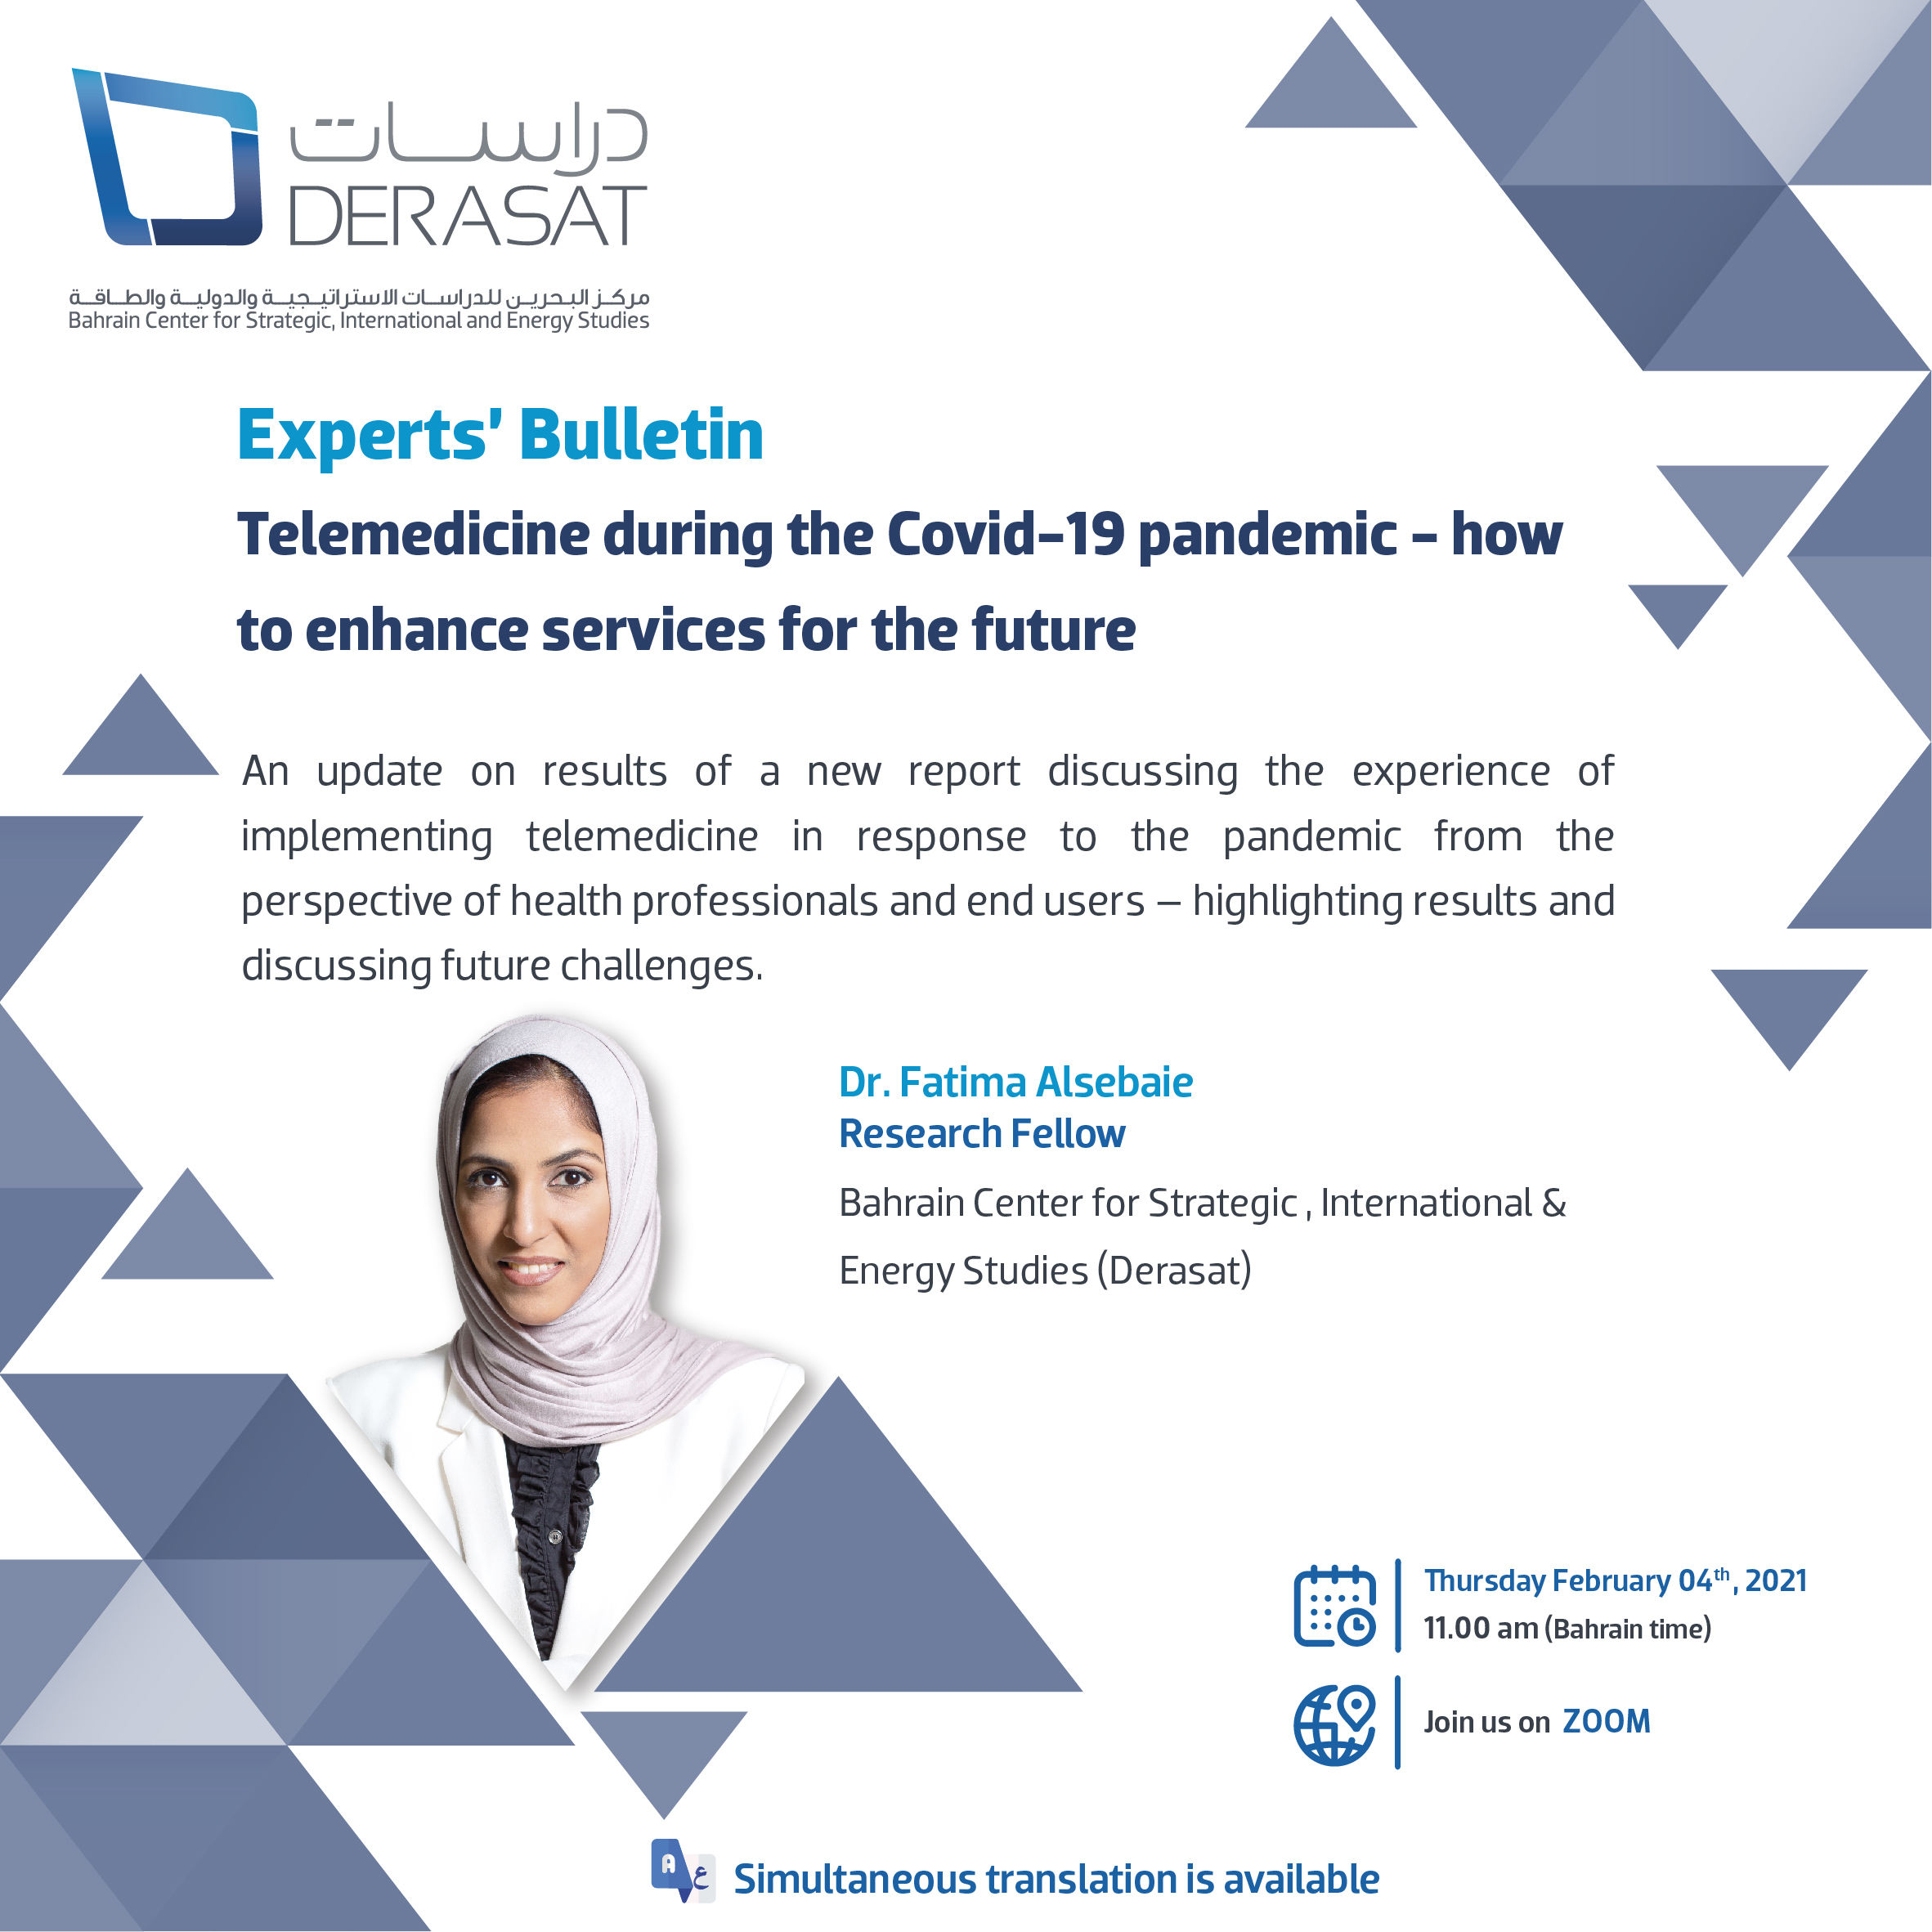 Experts' Bulletin #10: Telemedicine during the Covid-19 pandemic – how to enhance services for the future.